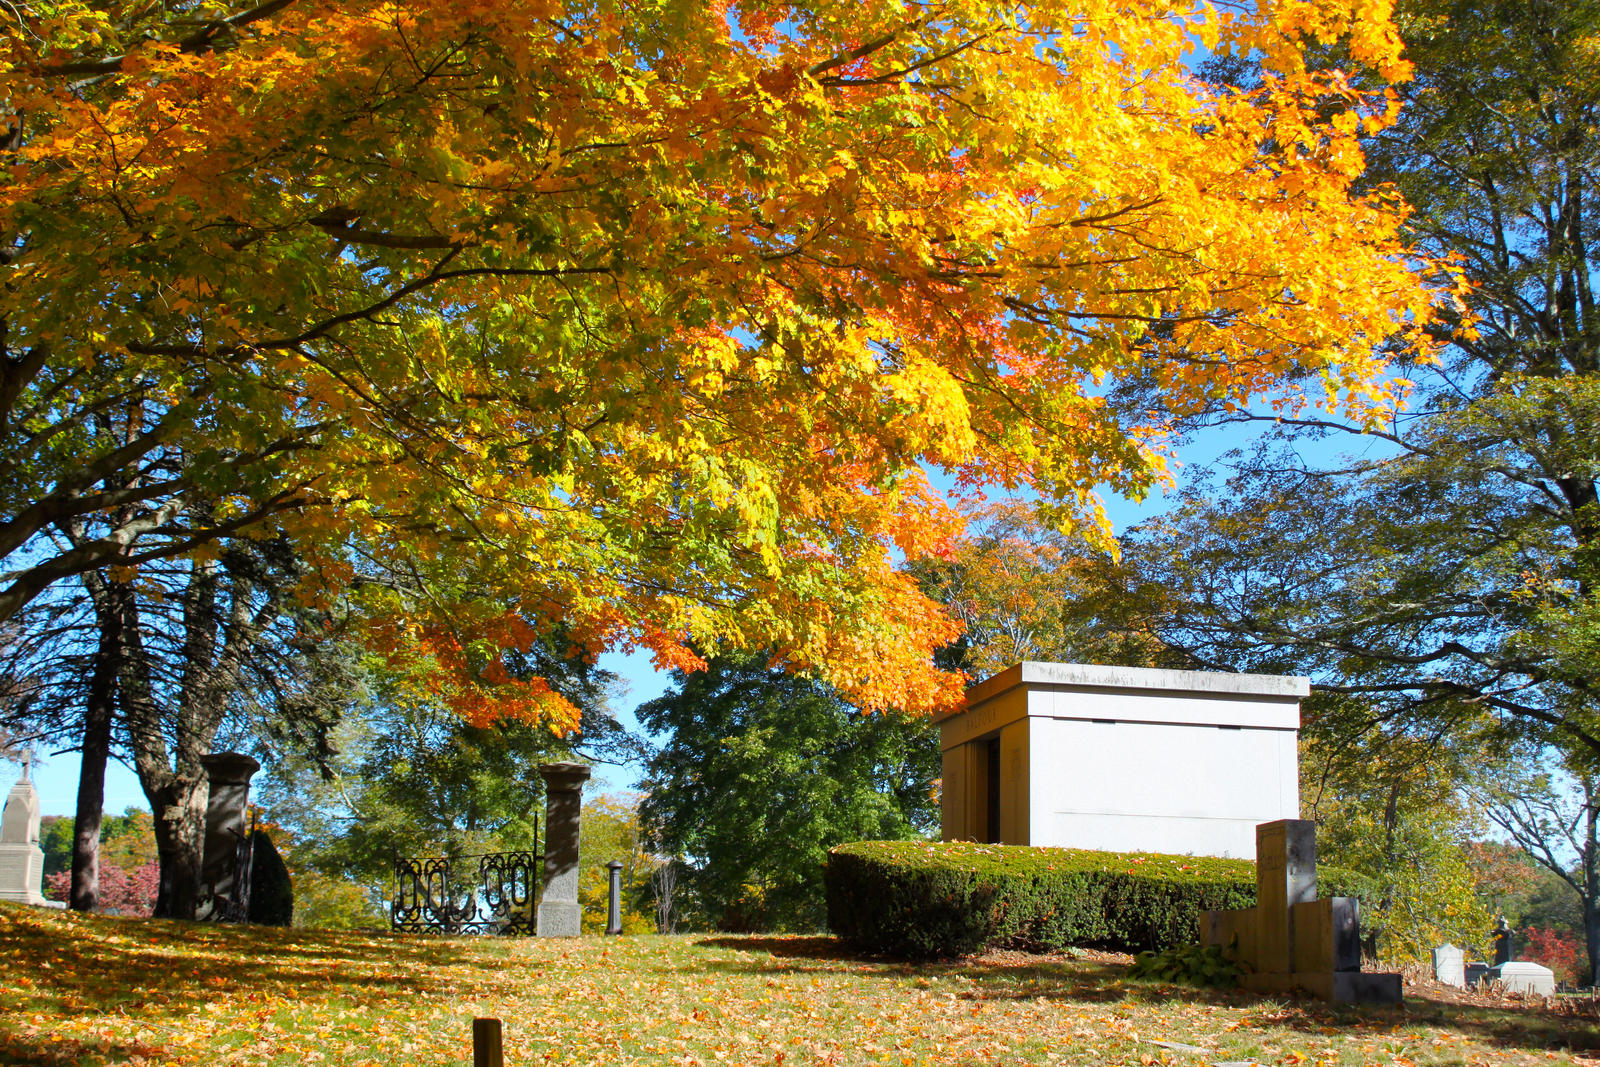 Autumn in the Cemetery by WilliamJCovello